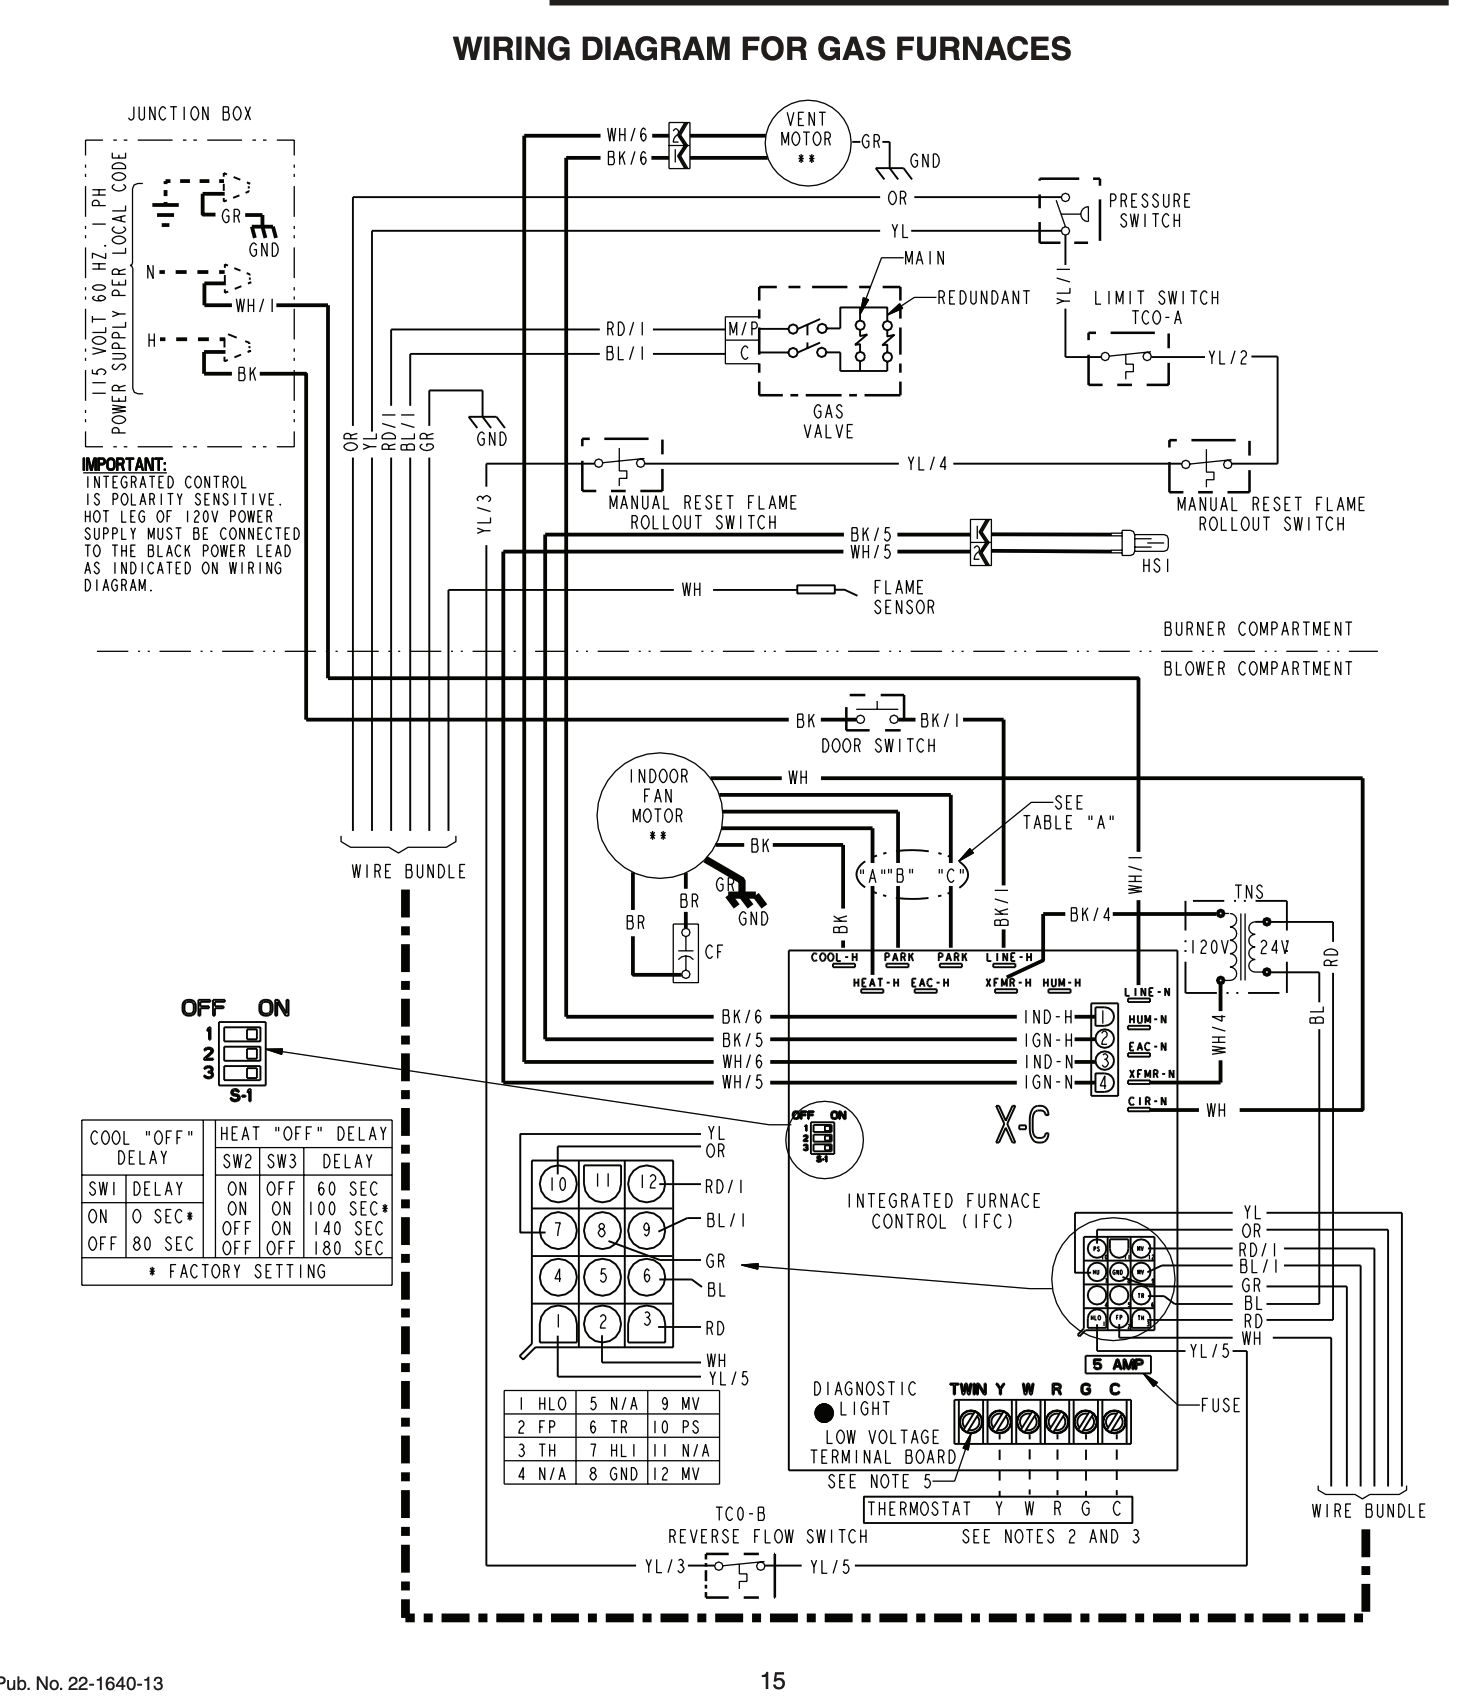 Basic Furnace Schematic